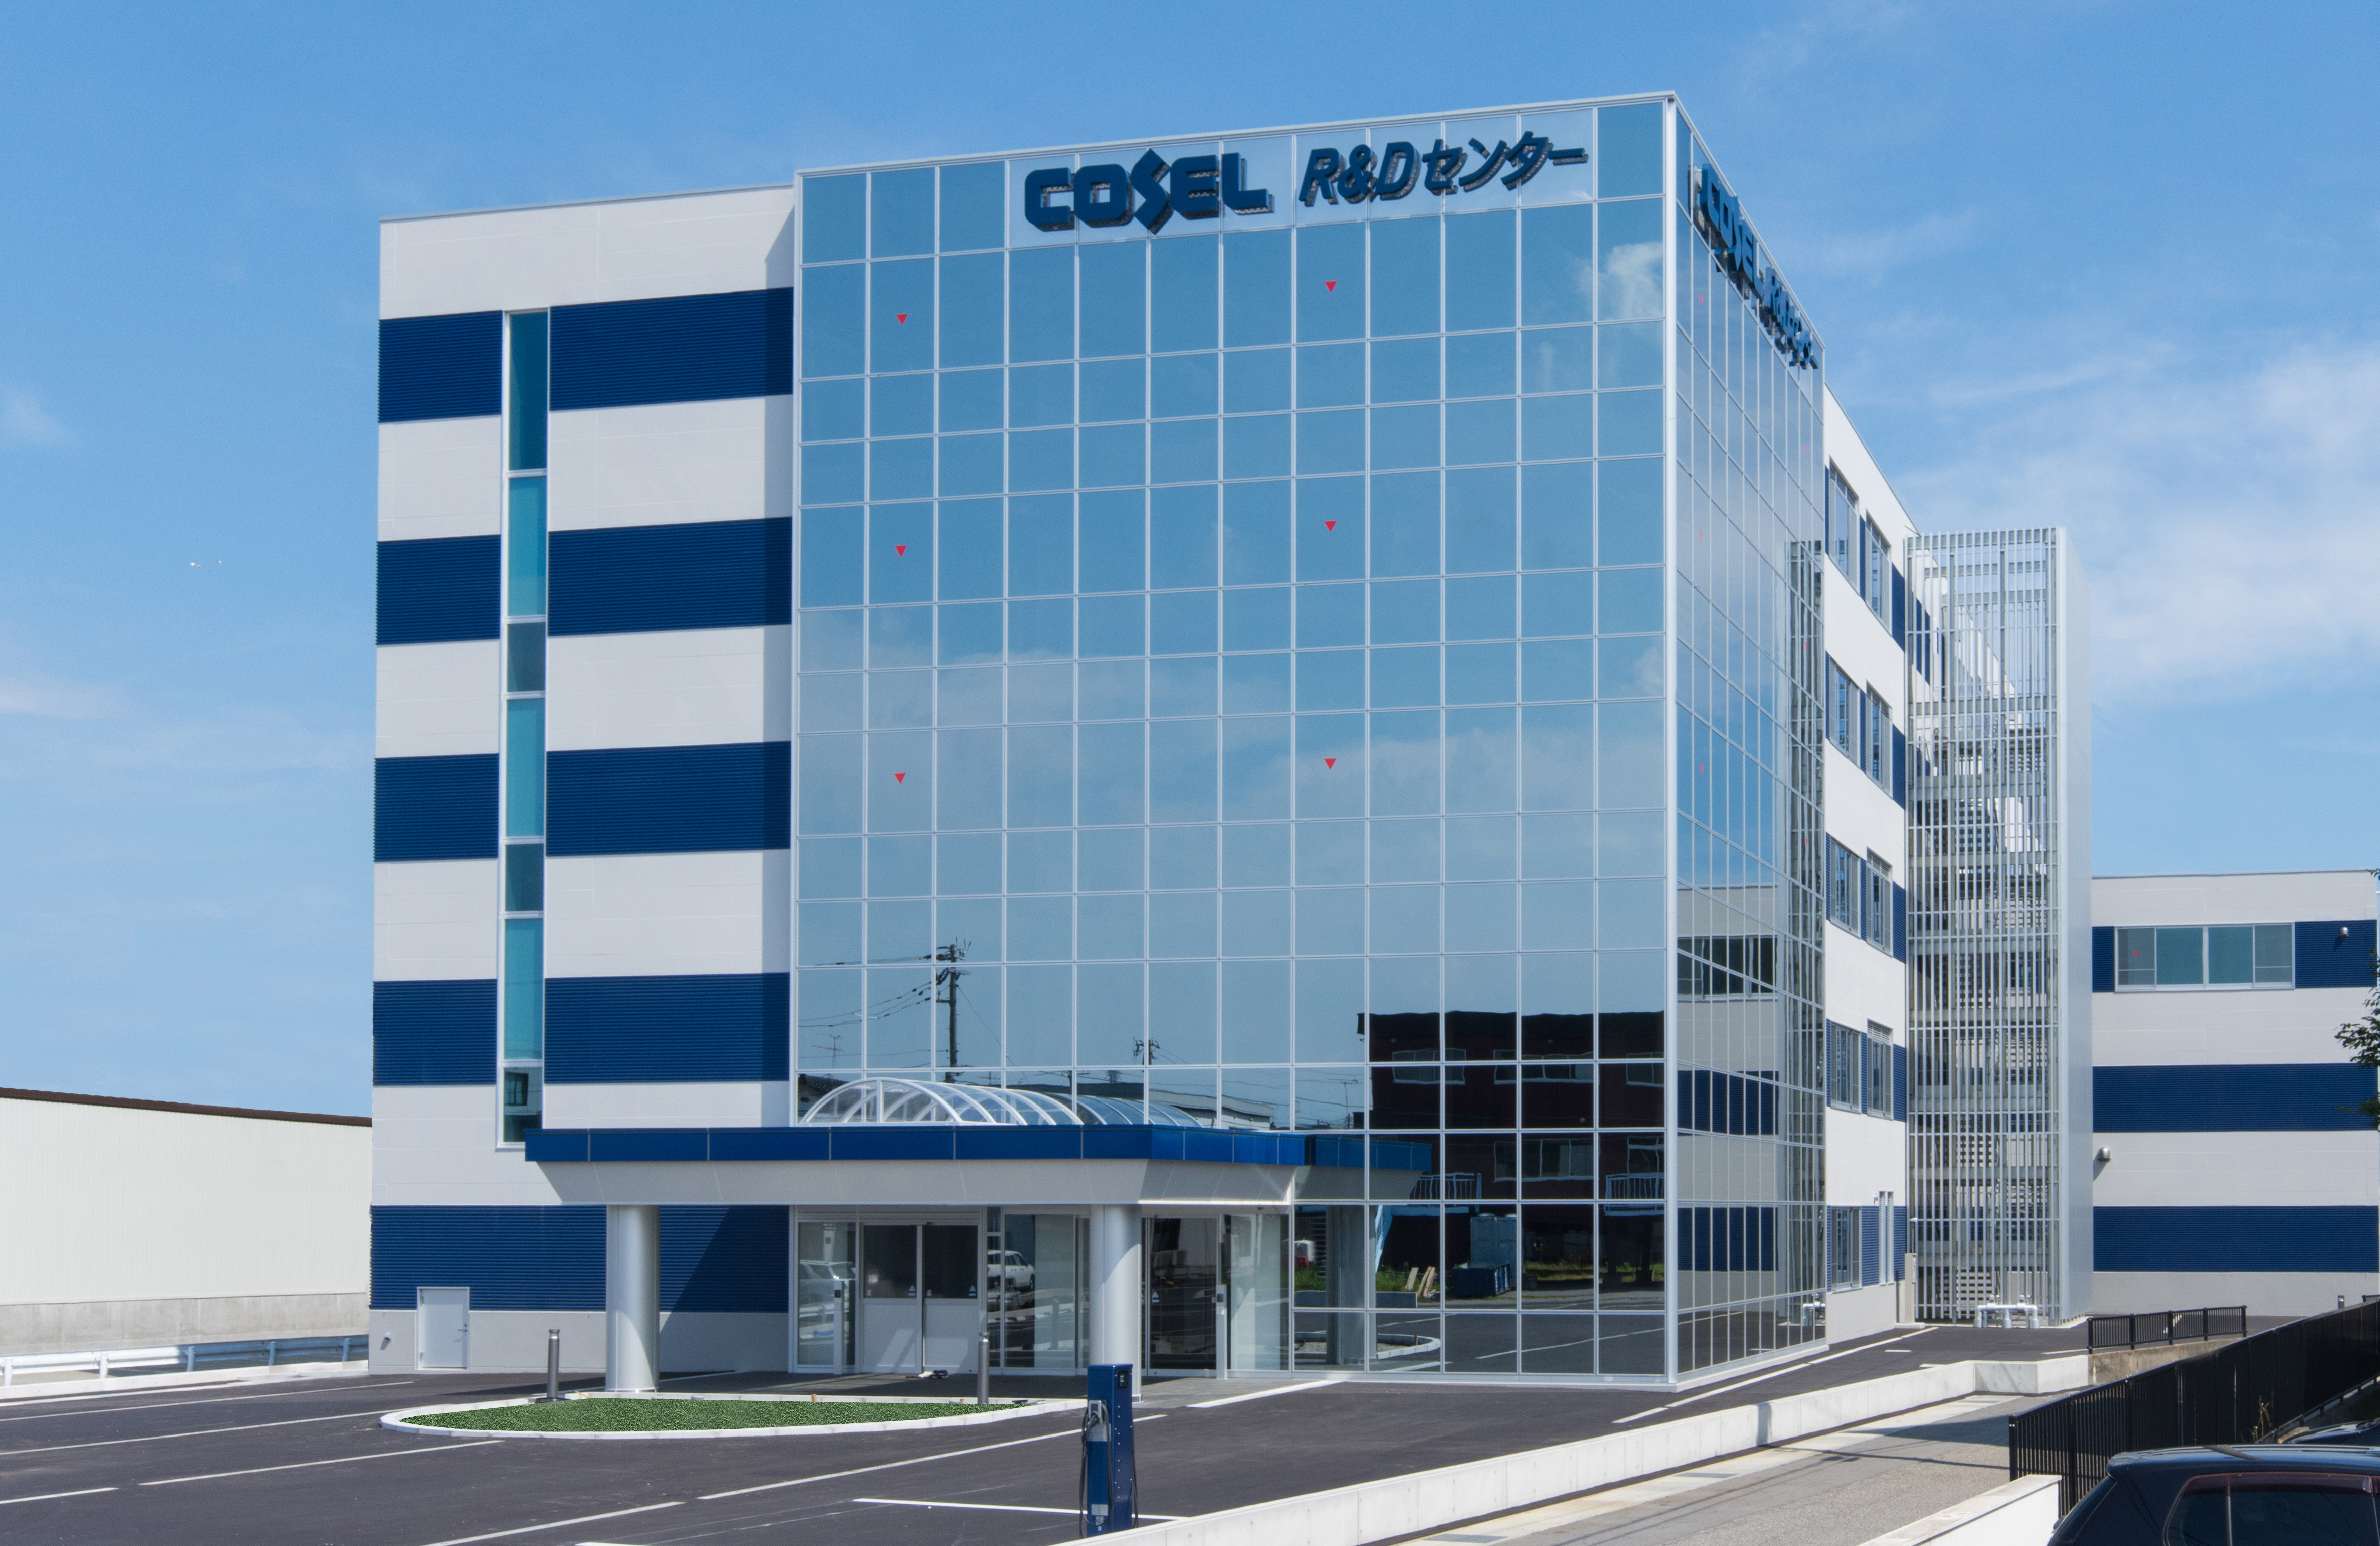 COSEL Opens New RD Innovation Center (002)